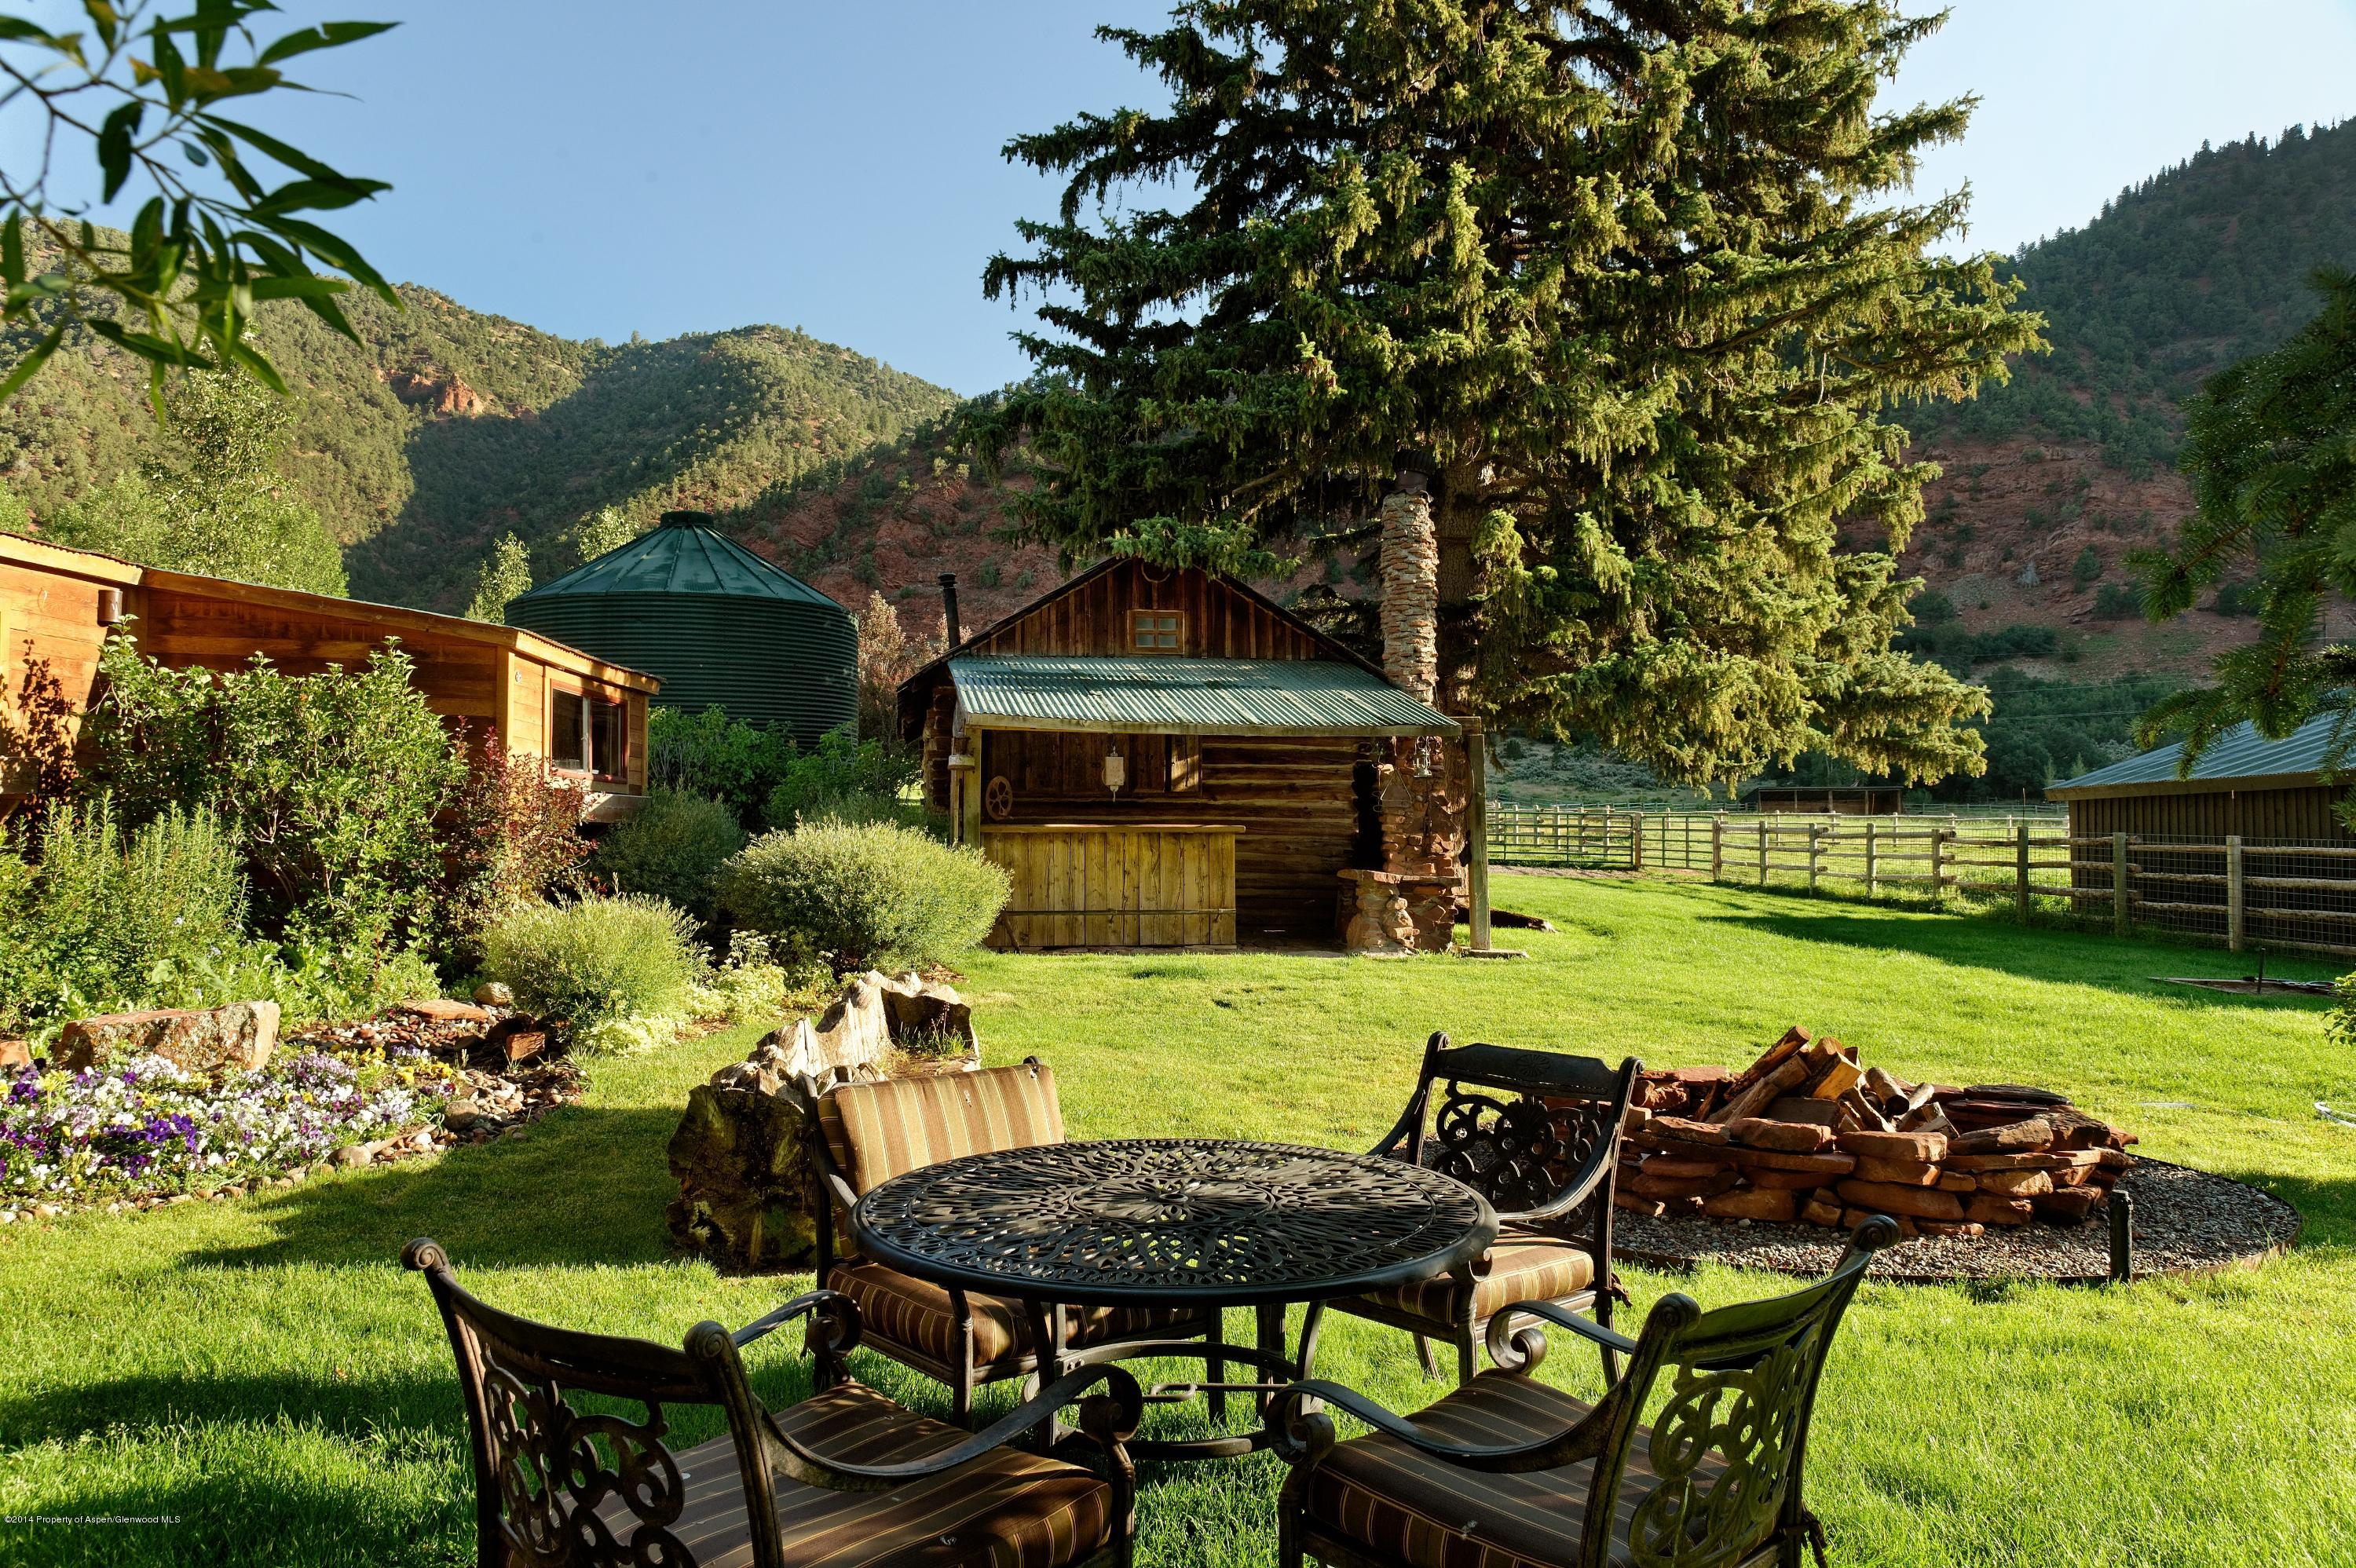 MLS# 135595 - 58 - 50 E River Ranch Road, Snowmass, CO 81654